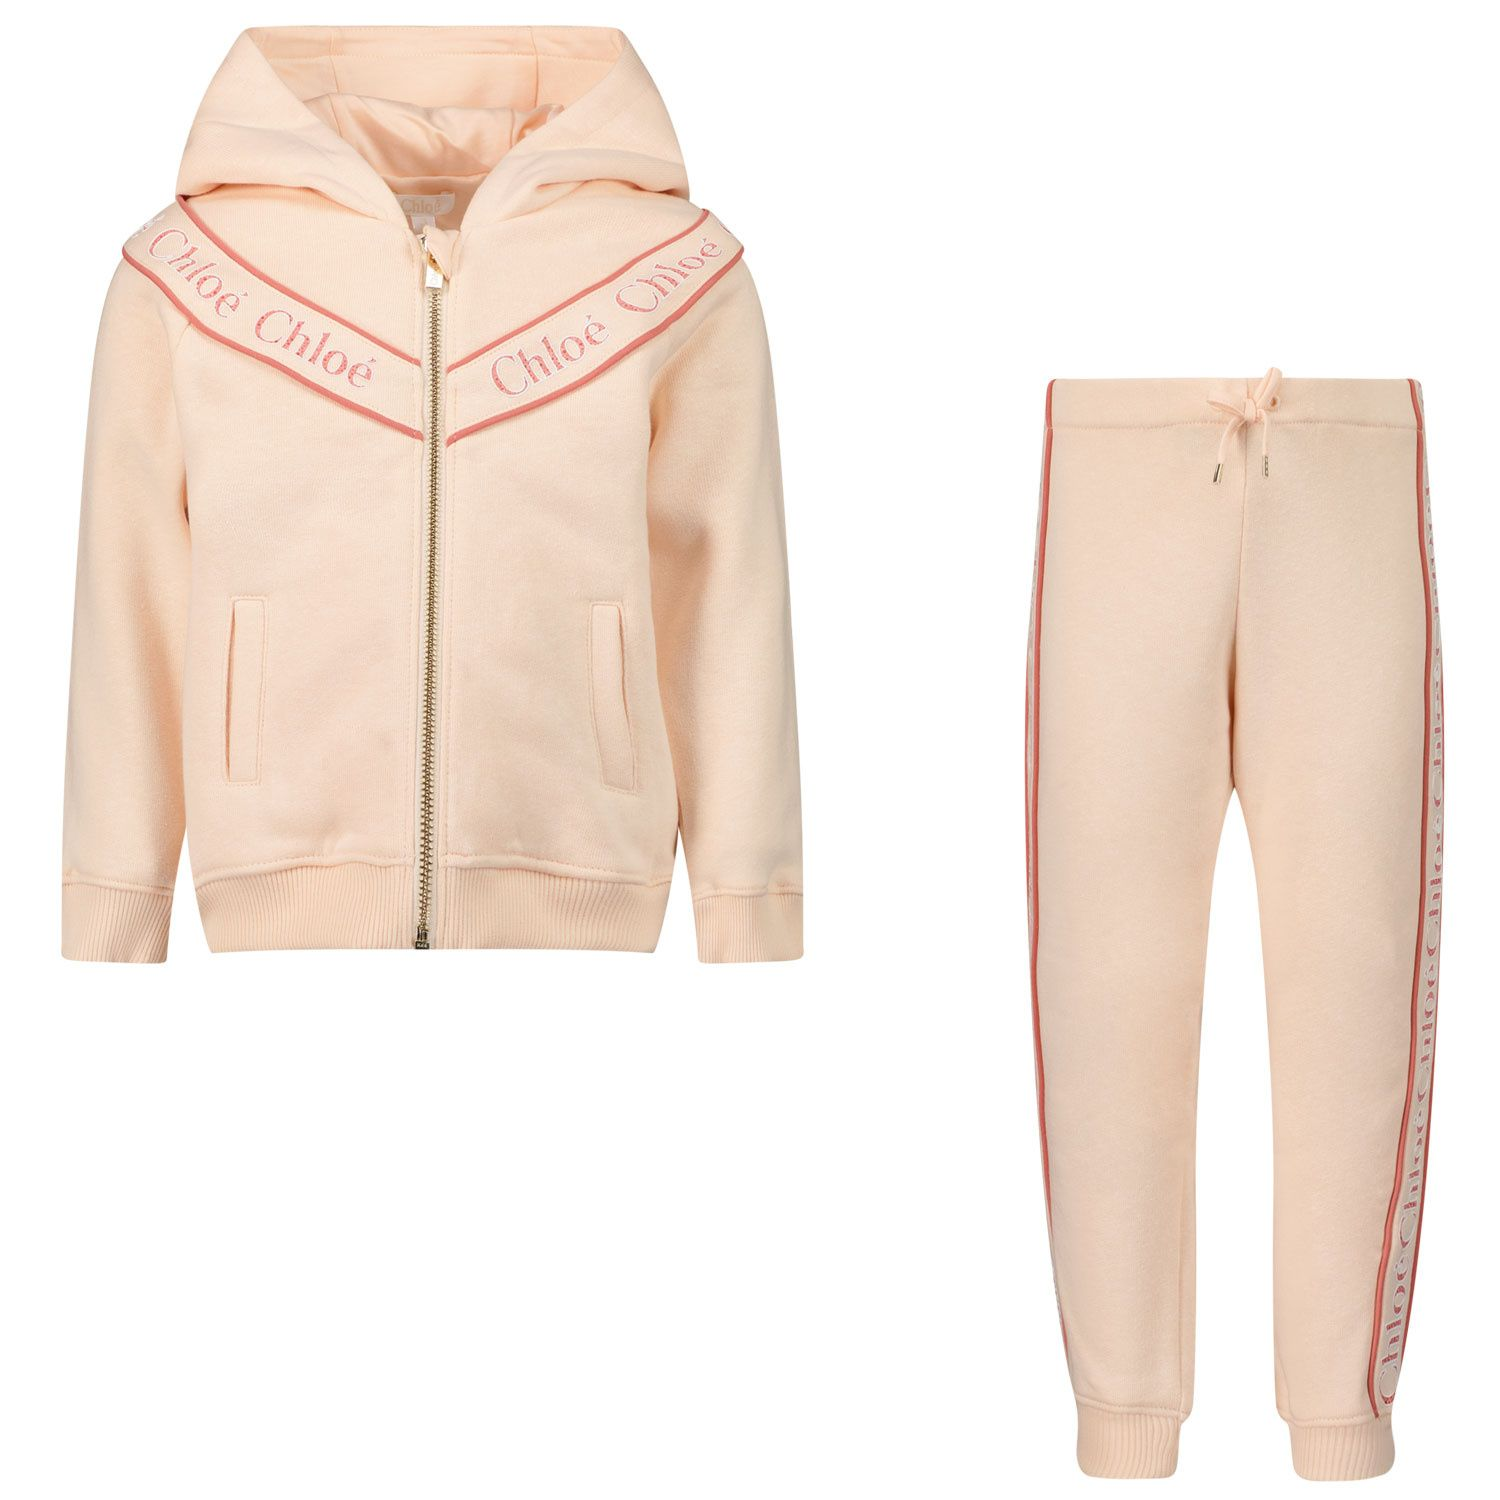 Picture of Chloé C08041 baby sweatsuit light pink